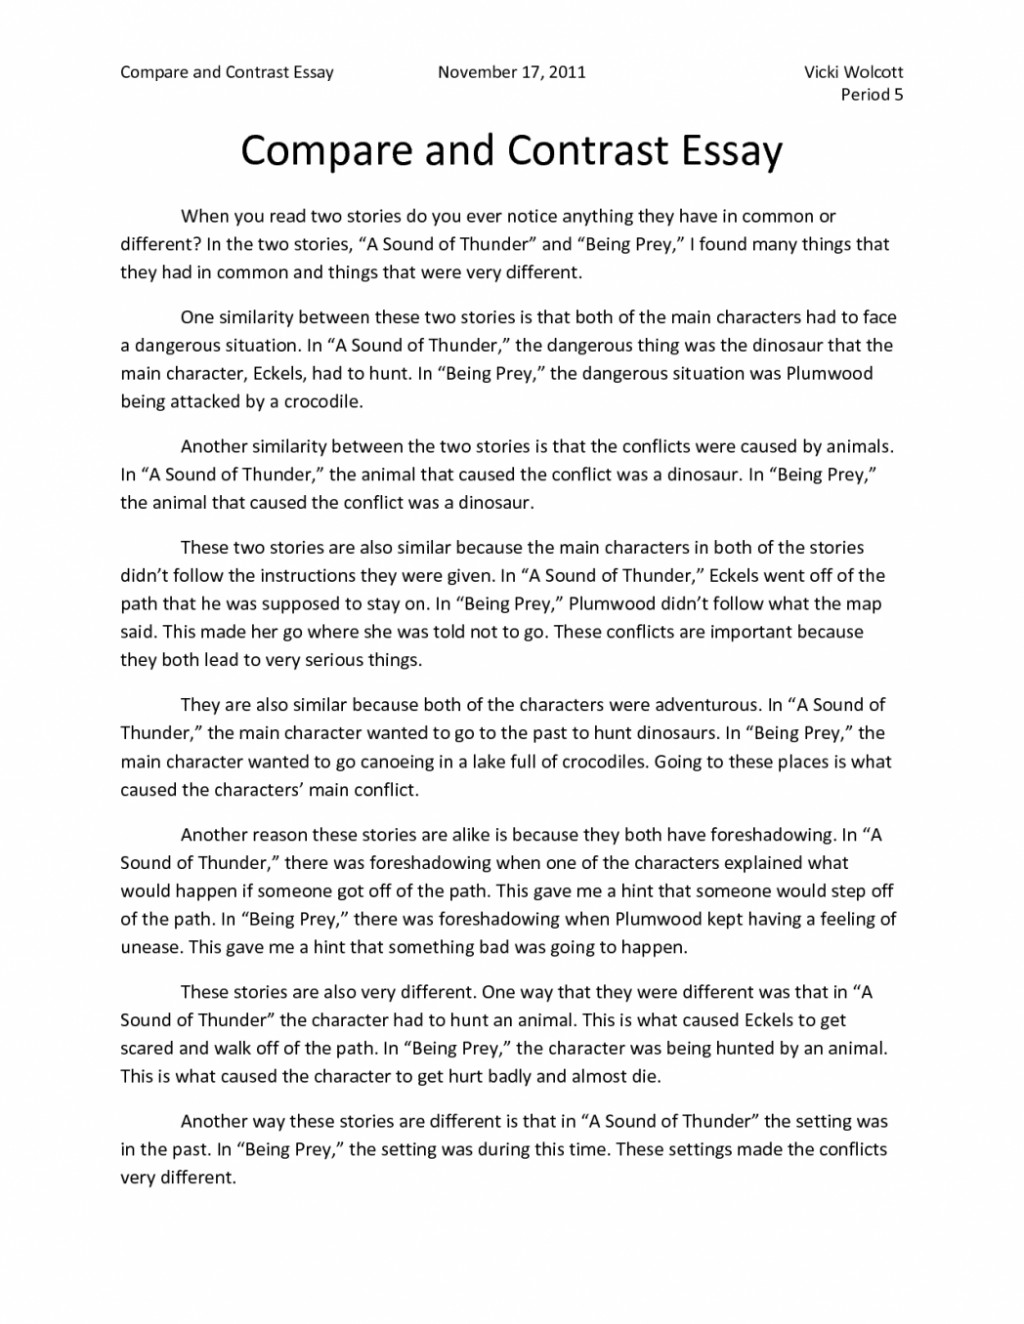 005 Contrast Essay Topics Example Good Compare And For College Easy Argumentative Students Astounding Comparison Middle School Elementary Prompts Large